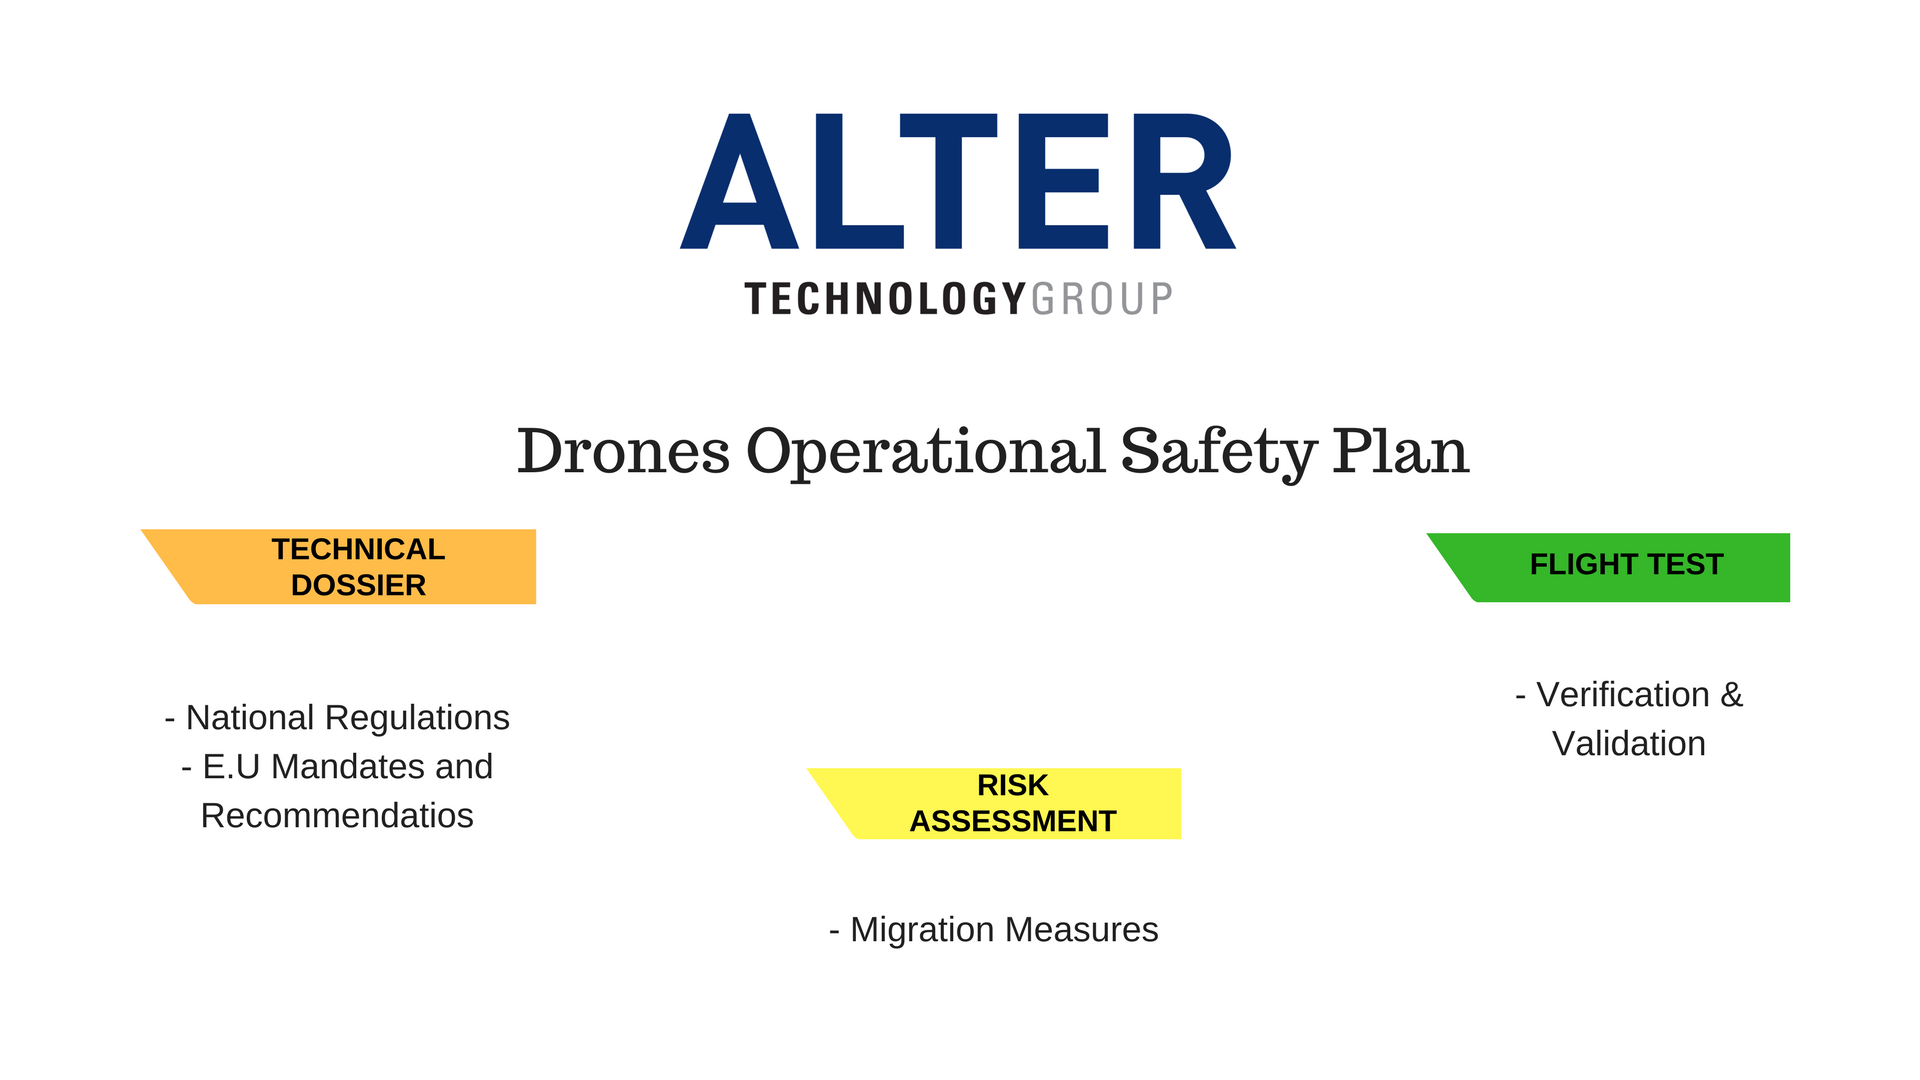 Drones Operational Safety Plan